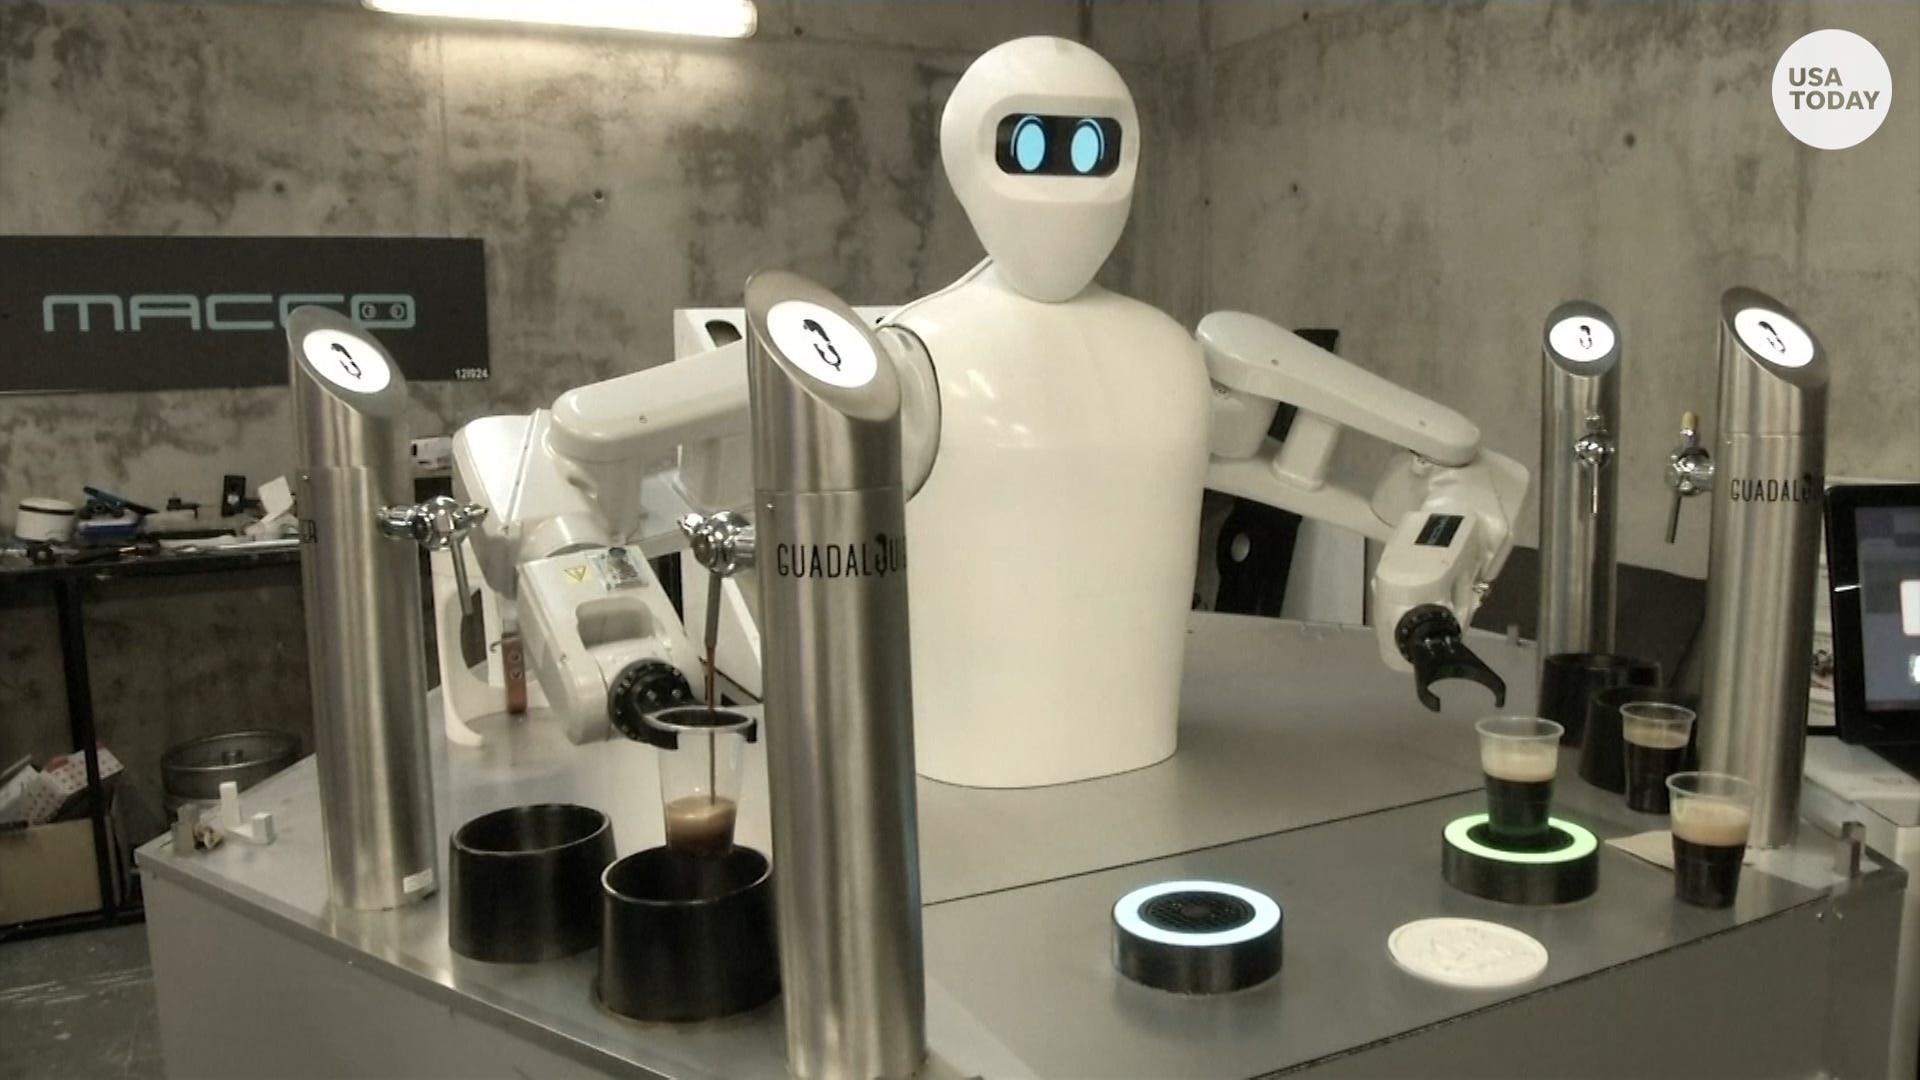 Robotic dogs serve beer to bar patrons in Spain to prevent spread of COVID-19